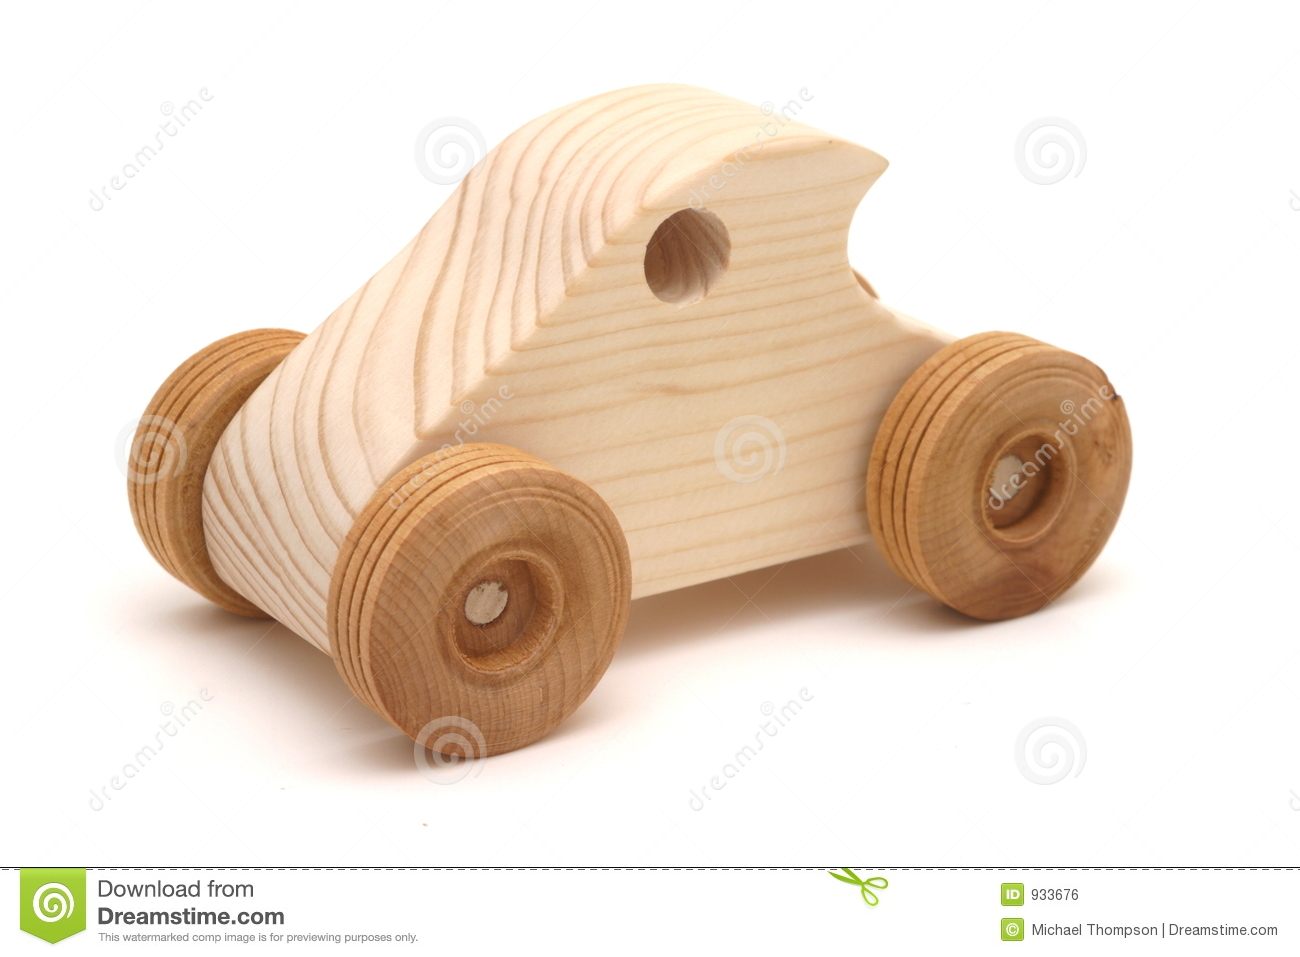 toy car: wooden toy car